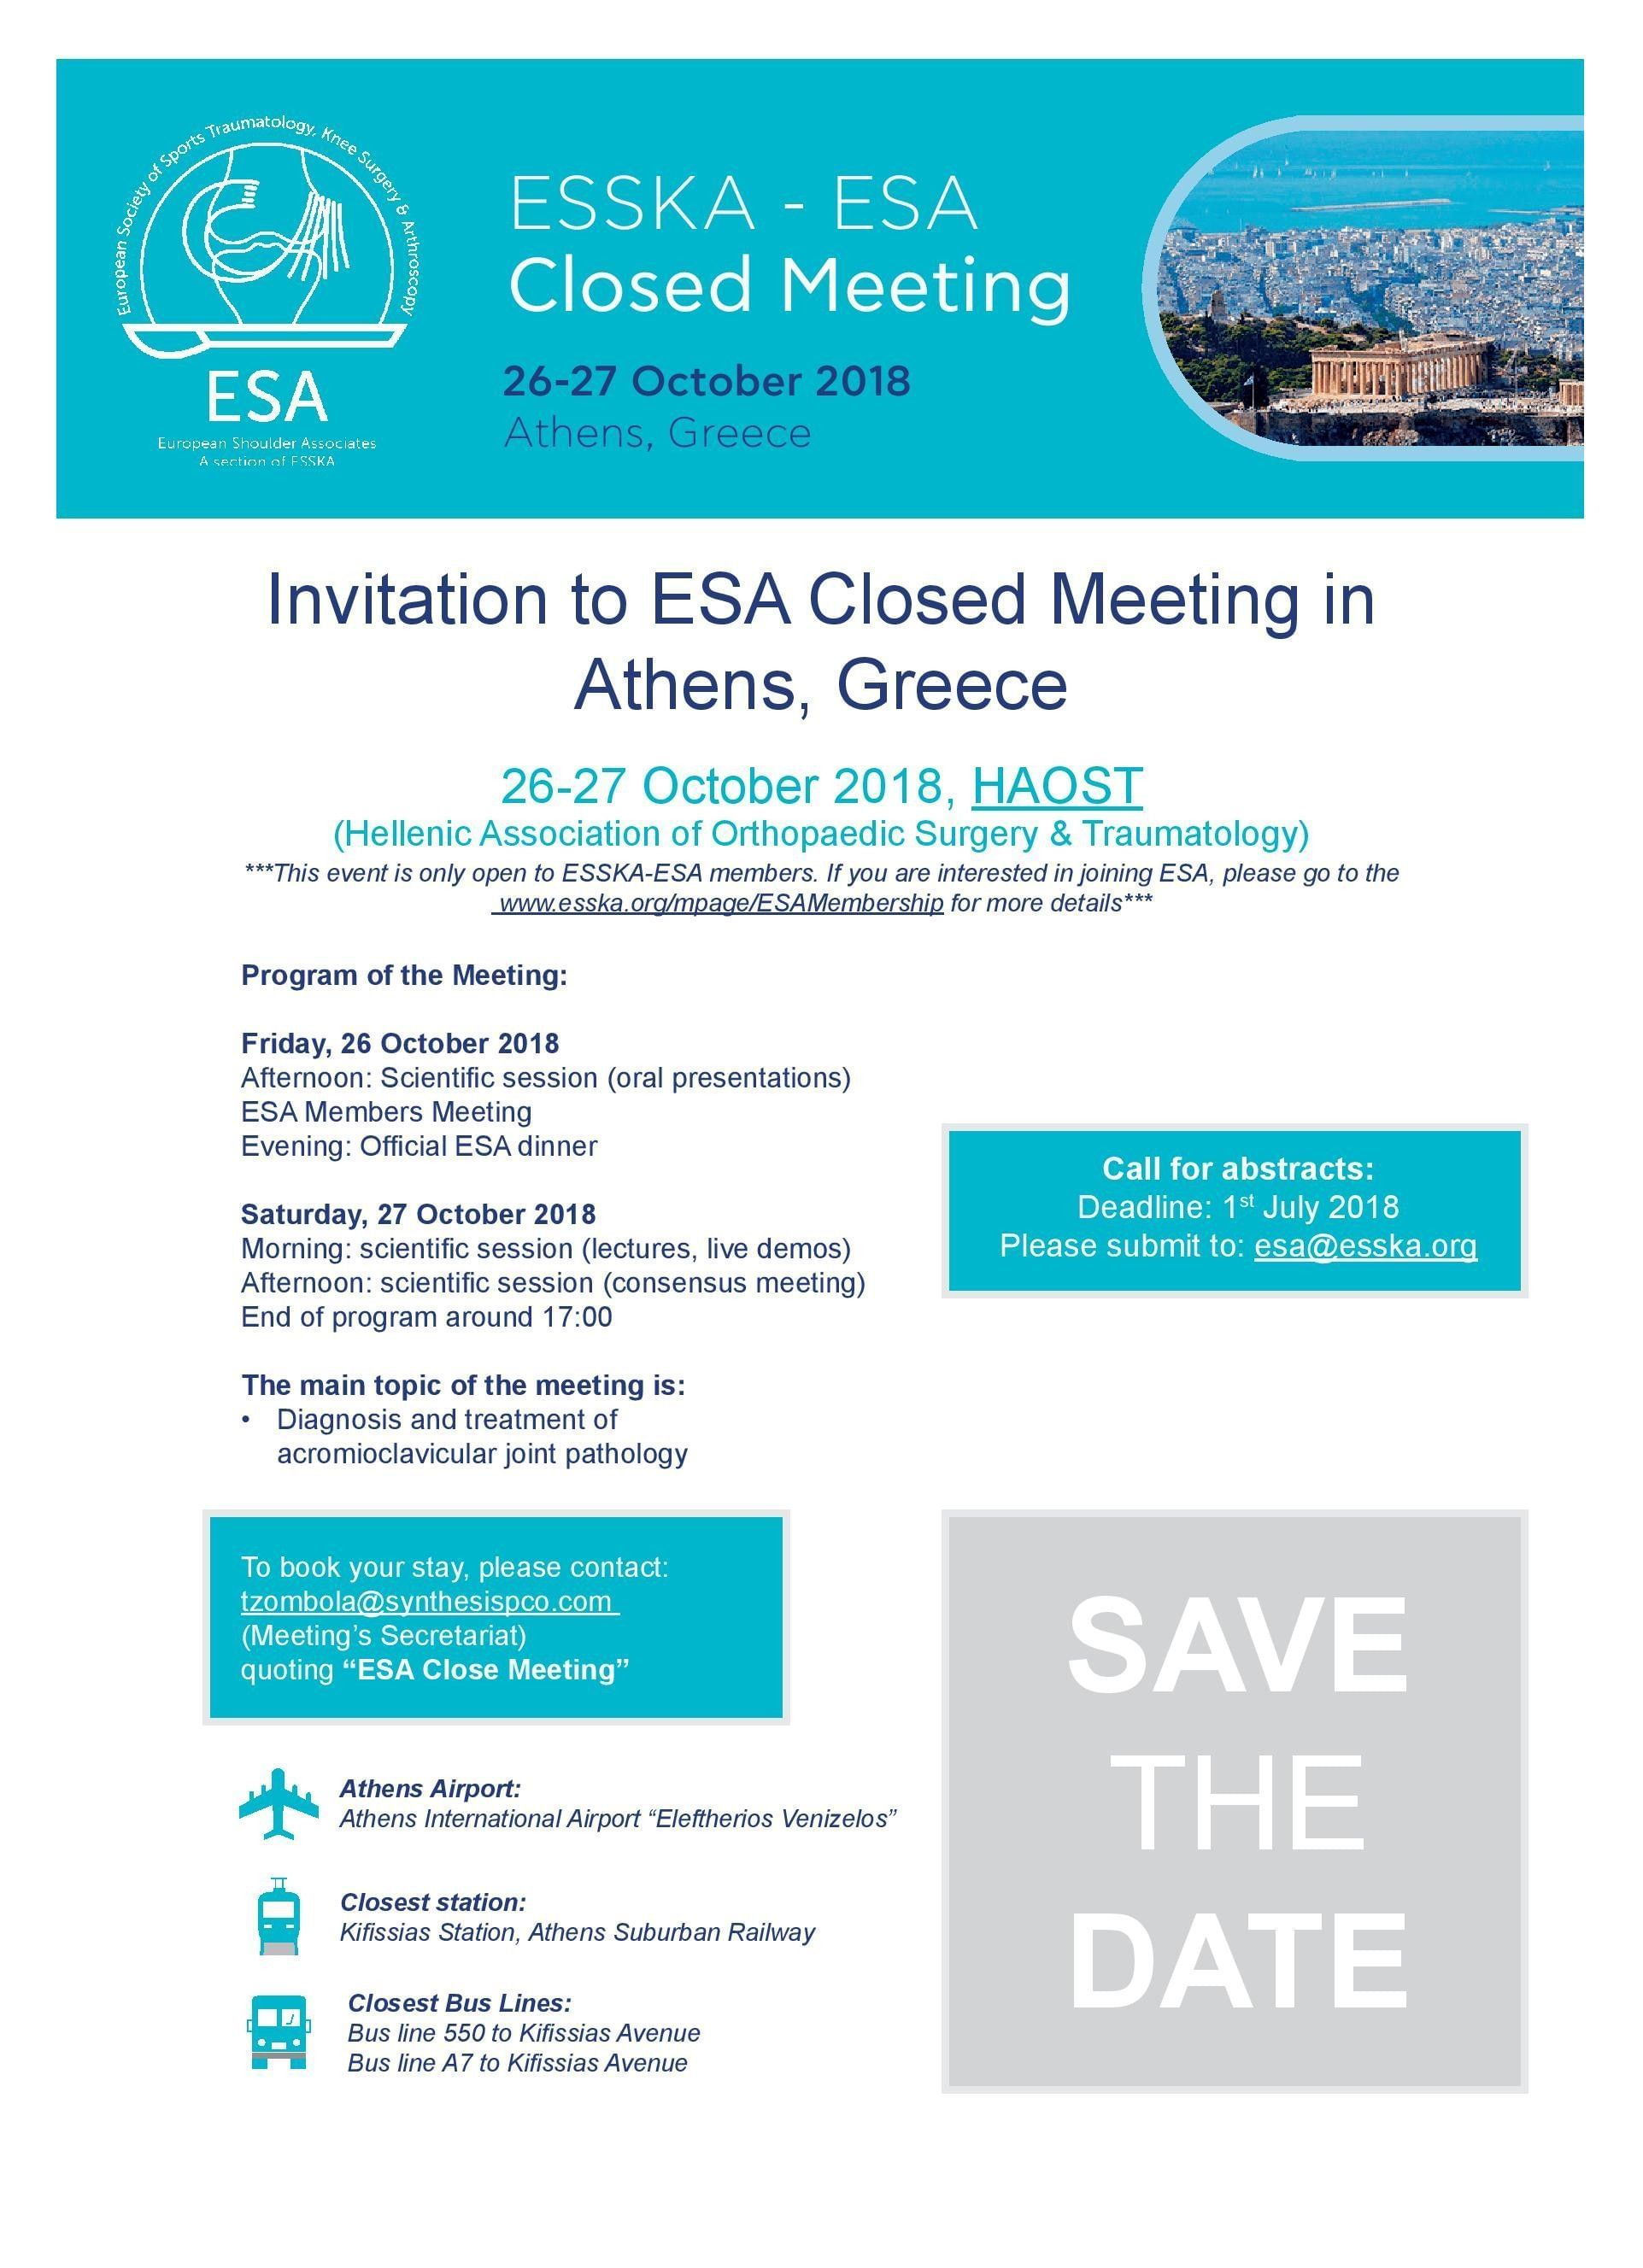 ESSKA - ESA CLOSED MEETING